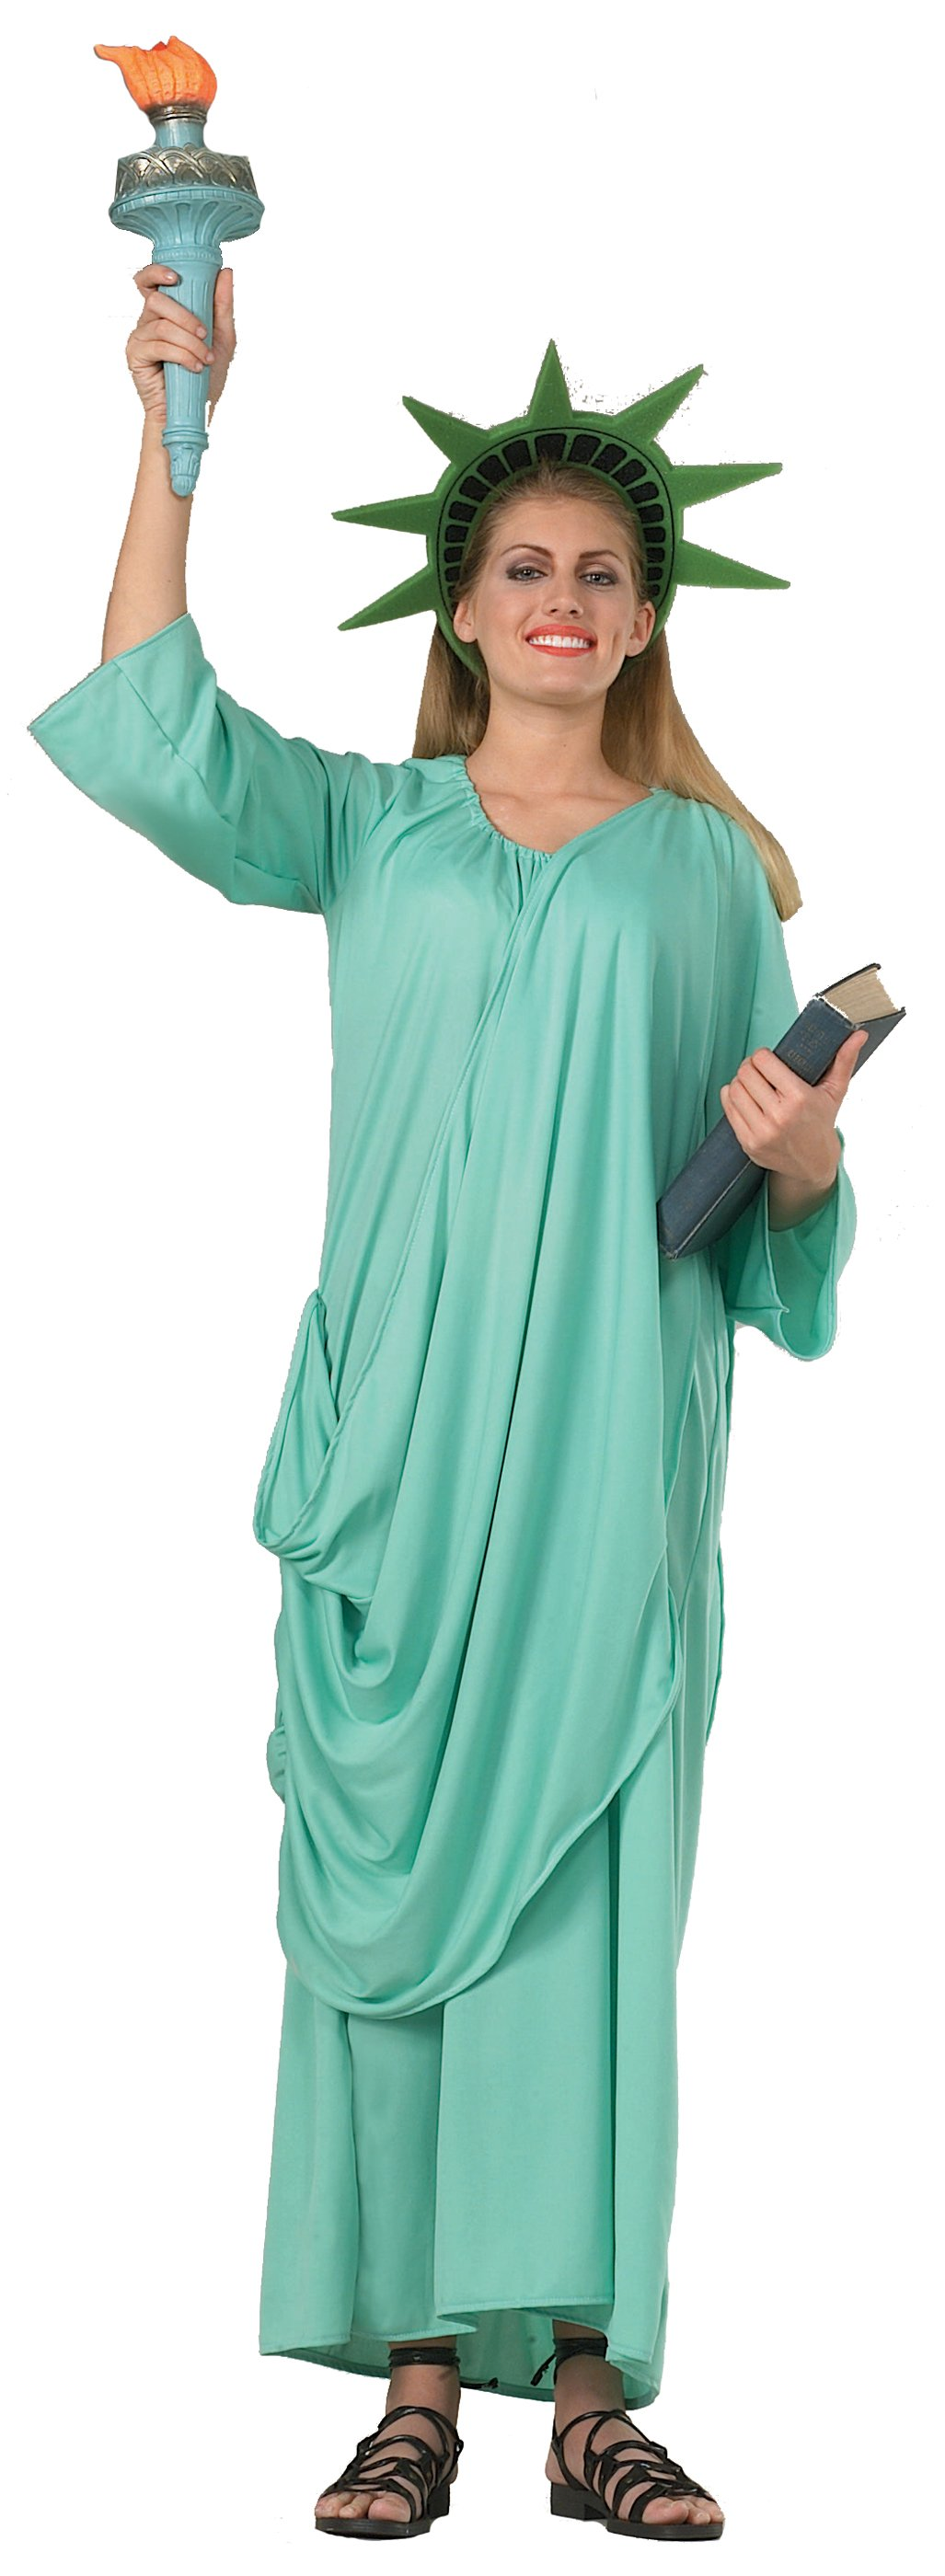 statue_of_liberty_costume